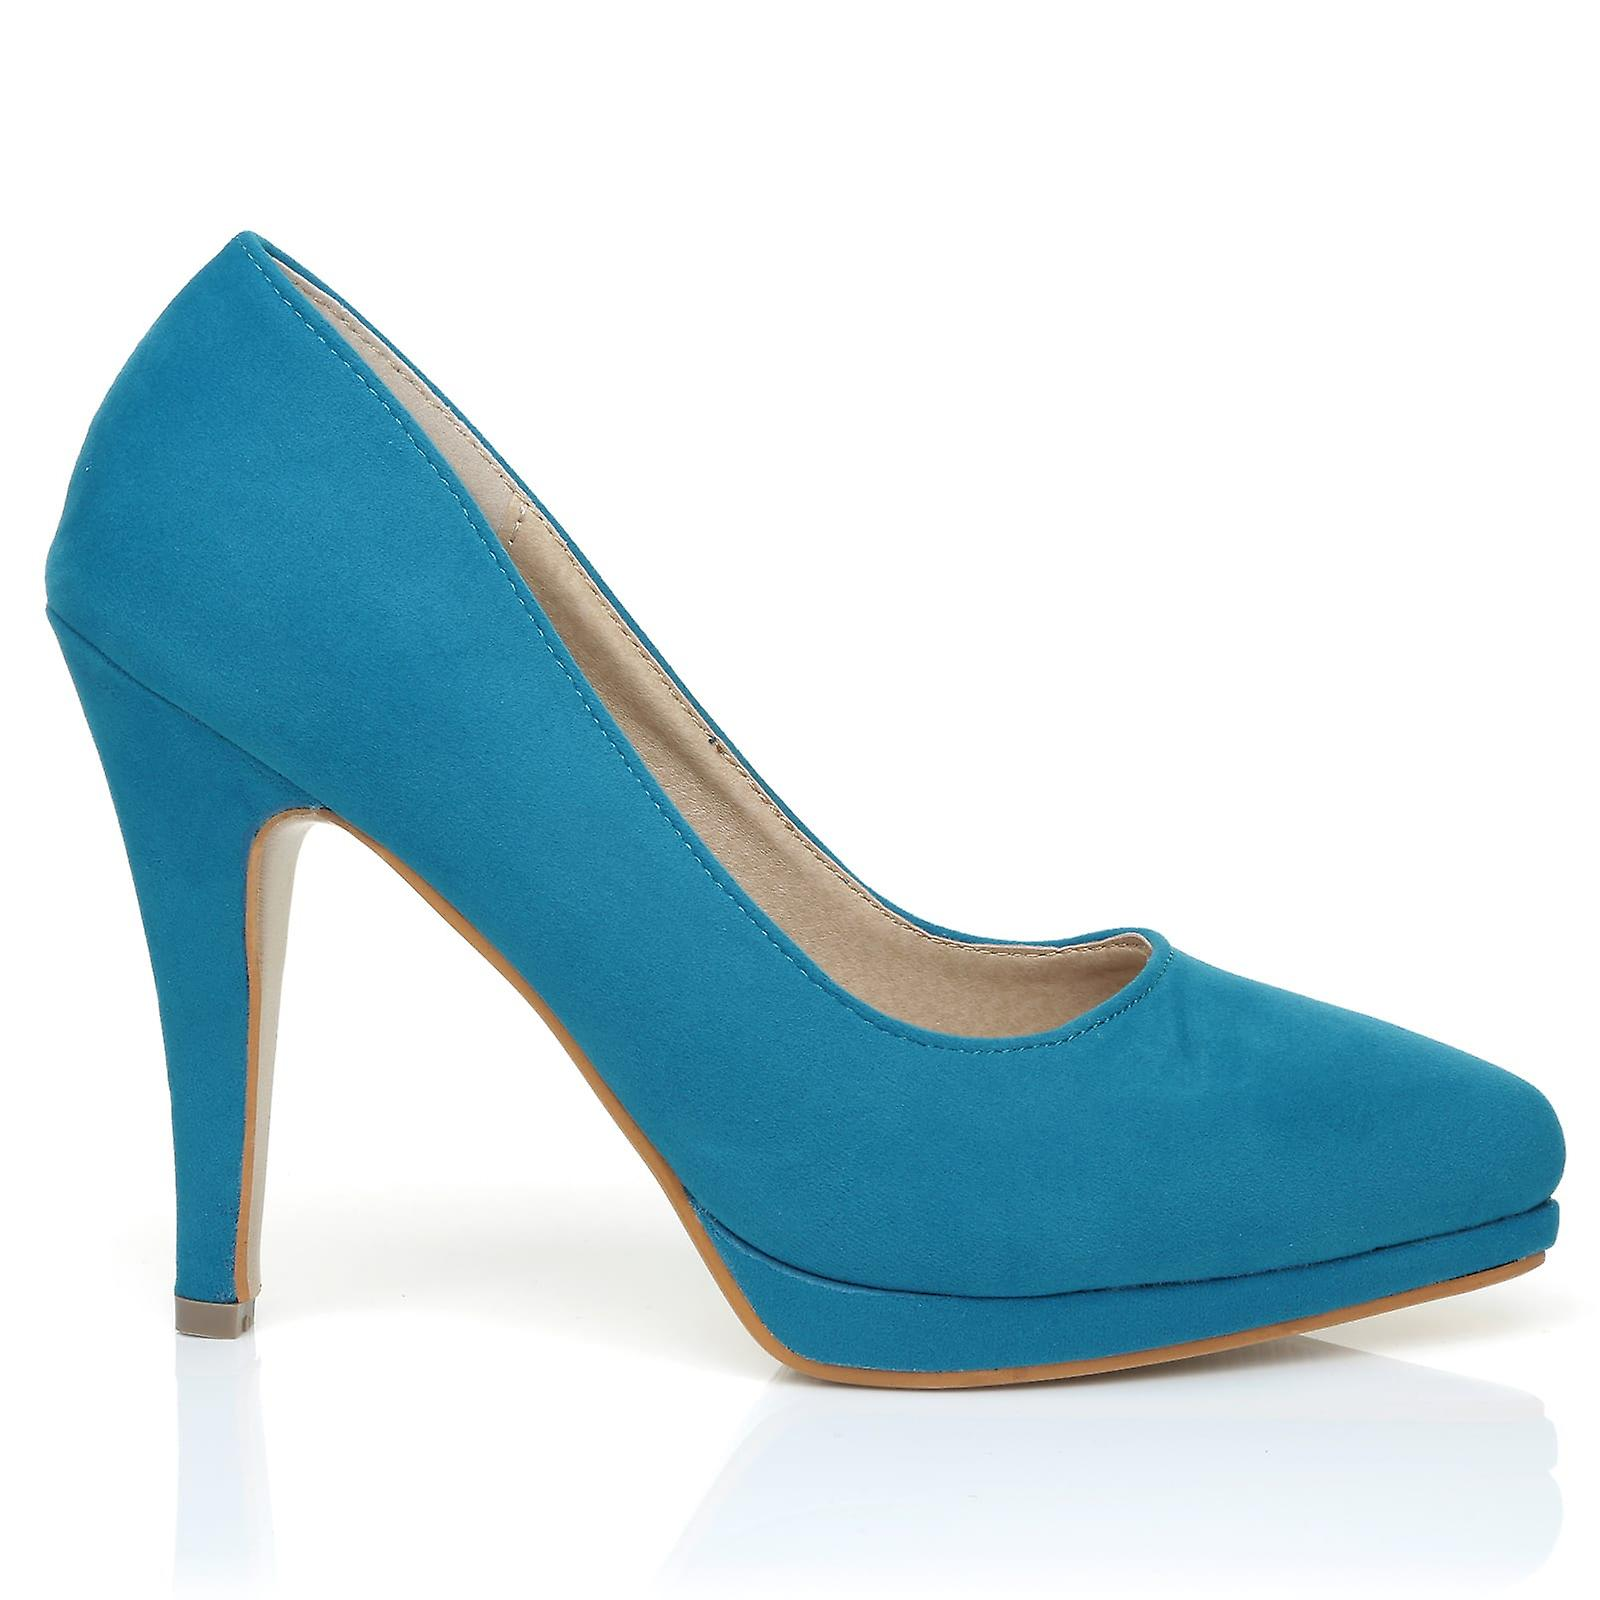 EMMA Turquoise Faux Suede Stiletto High Heel Platform Pointed Shoes